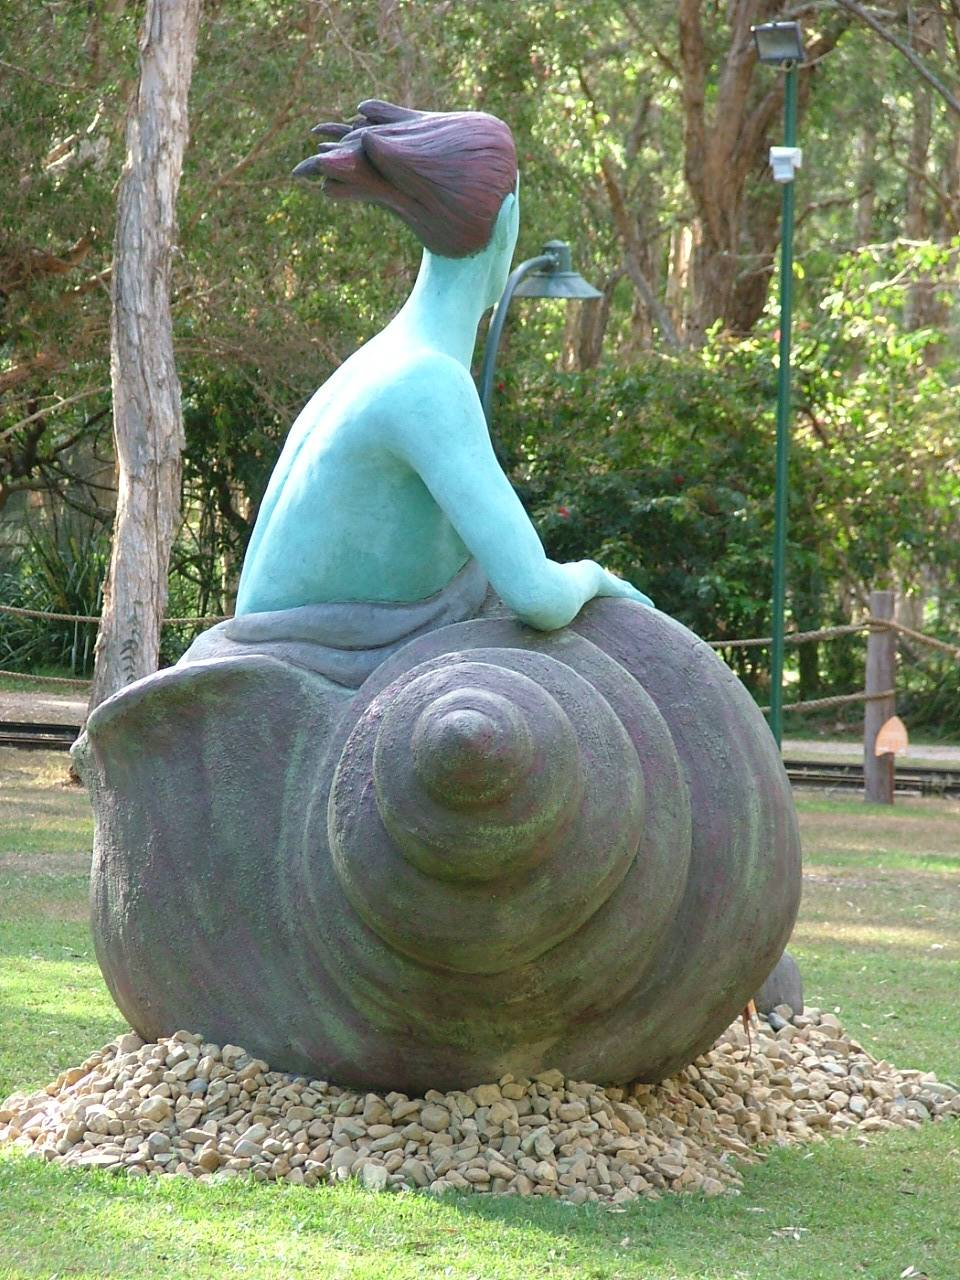 The Selkie in Currumbin Wildlife Sanctuary, Australia